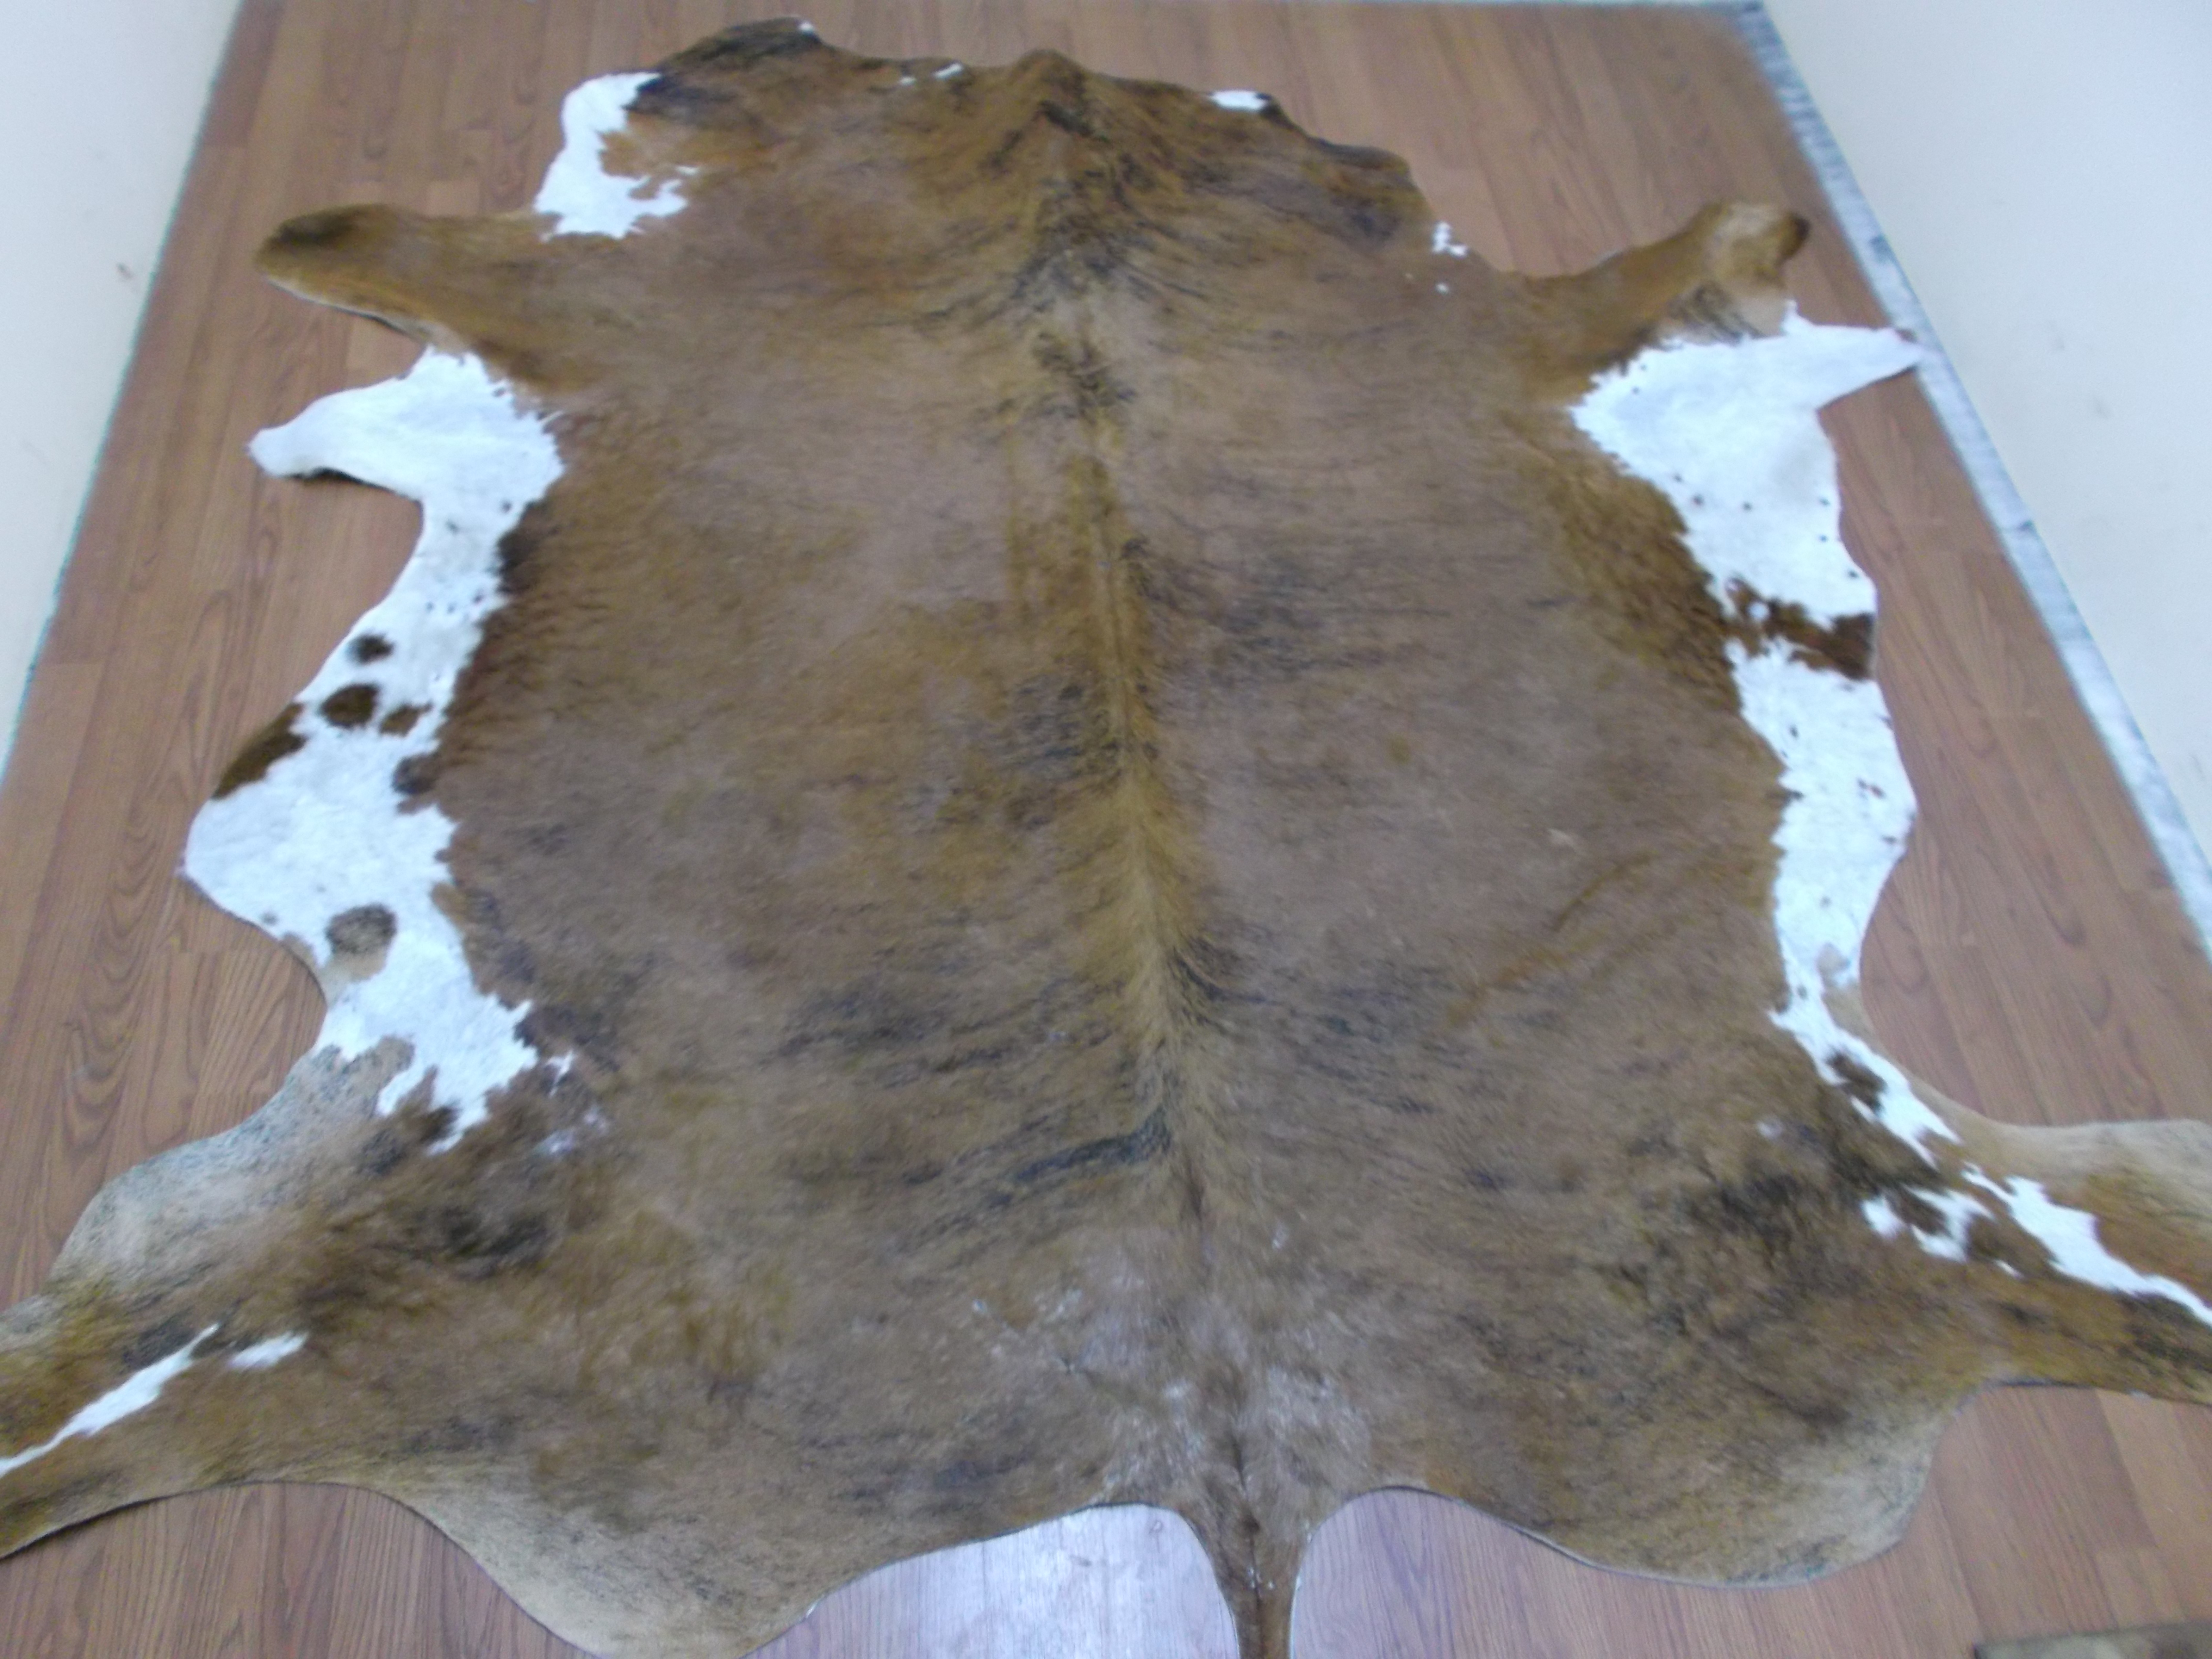 Animal Skin Tanning Services   Cow, Calf, Deer, Goat Hides ...